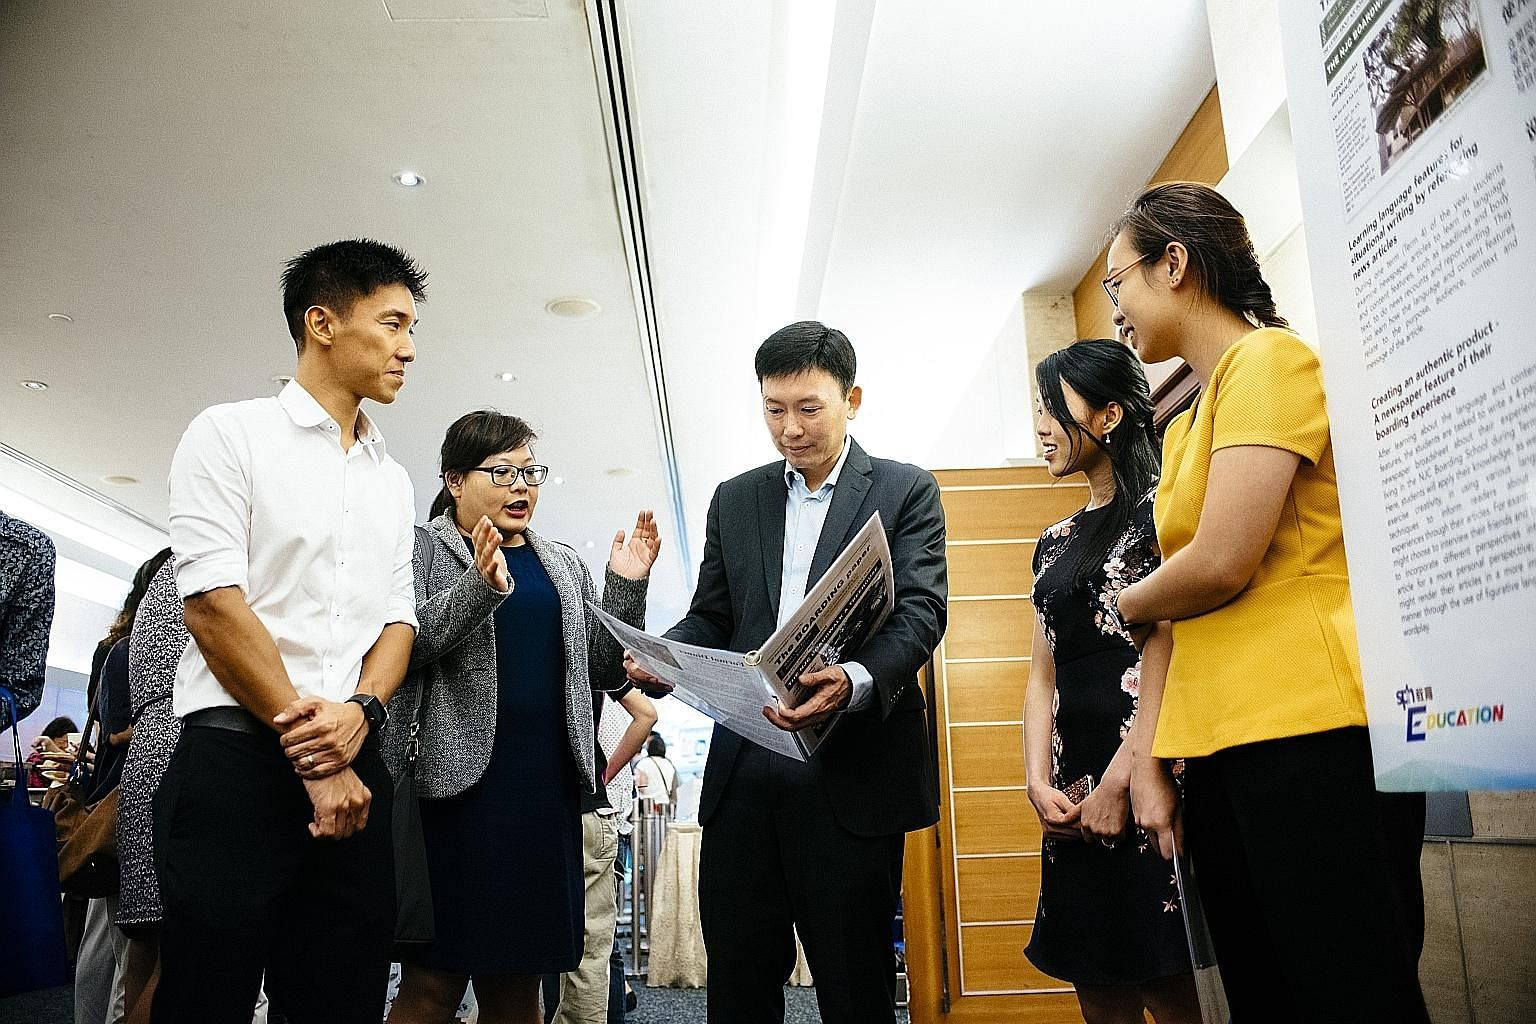 Senior Minister of State for Communications and Information and Health Chee Hong Tat looking at a newsletter put together by students involved in a National Junior College (NJC) project. With him are (from left) The Straits Times Schools teaching spe